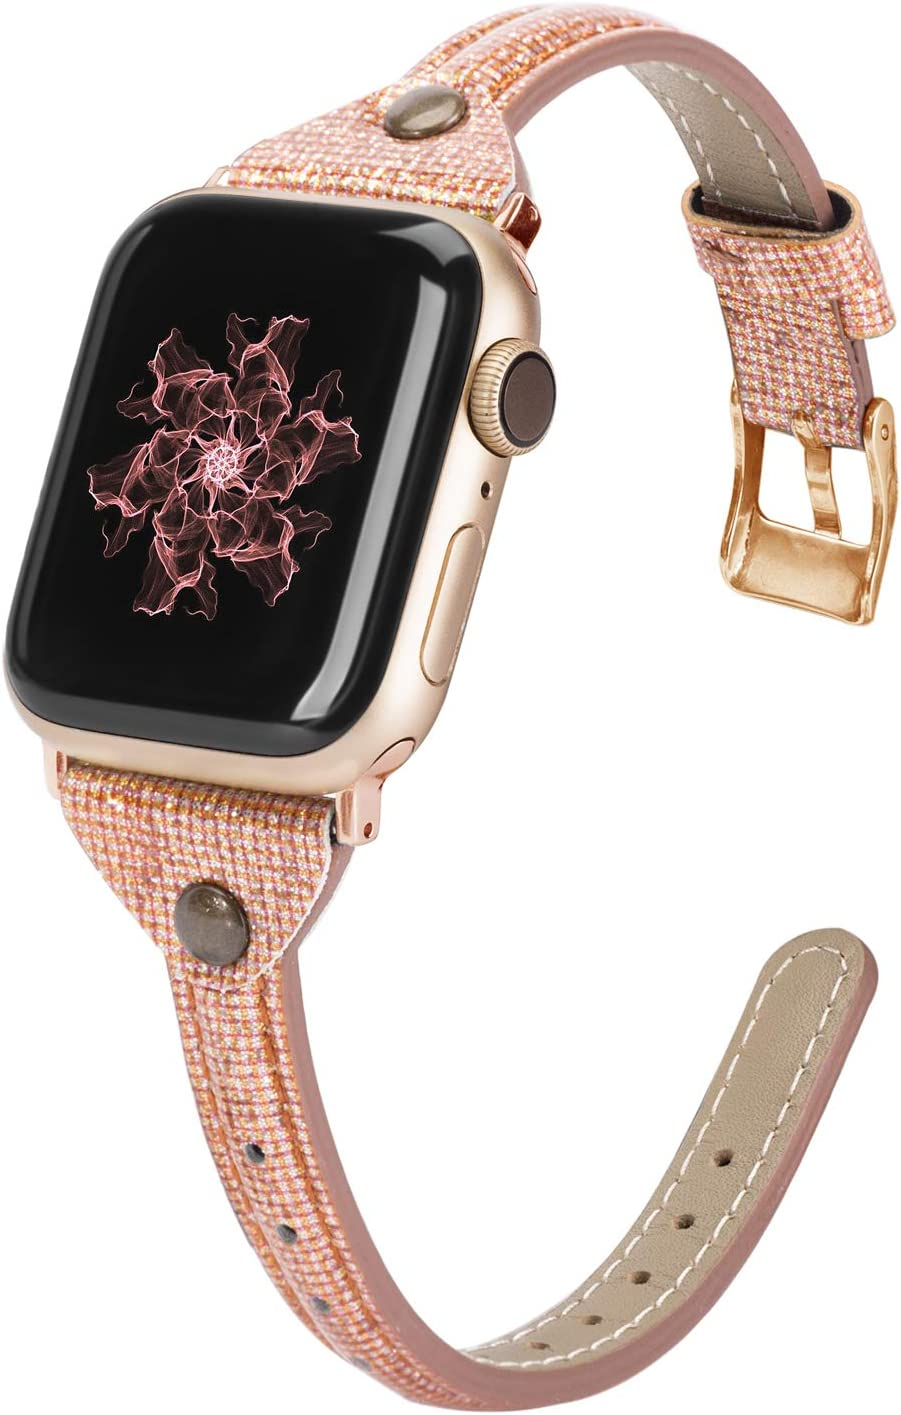 Wearlizer Thin Leather Compatible with Apple Watch Bands 38mm 40mm for iWatch SE Womens Slim Smooth Bling Strap Leisure Cute Glitter Rivet Shiny Wristband (Gold Clasp) Series 6 5 4 3 2 1-Deep Gold